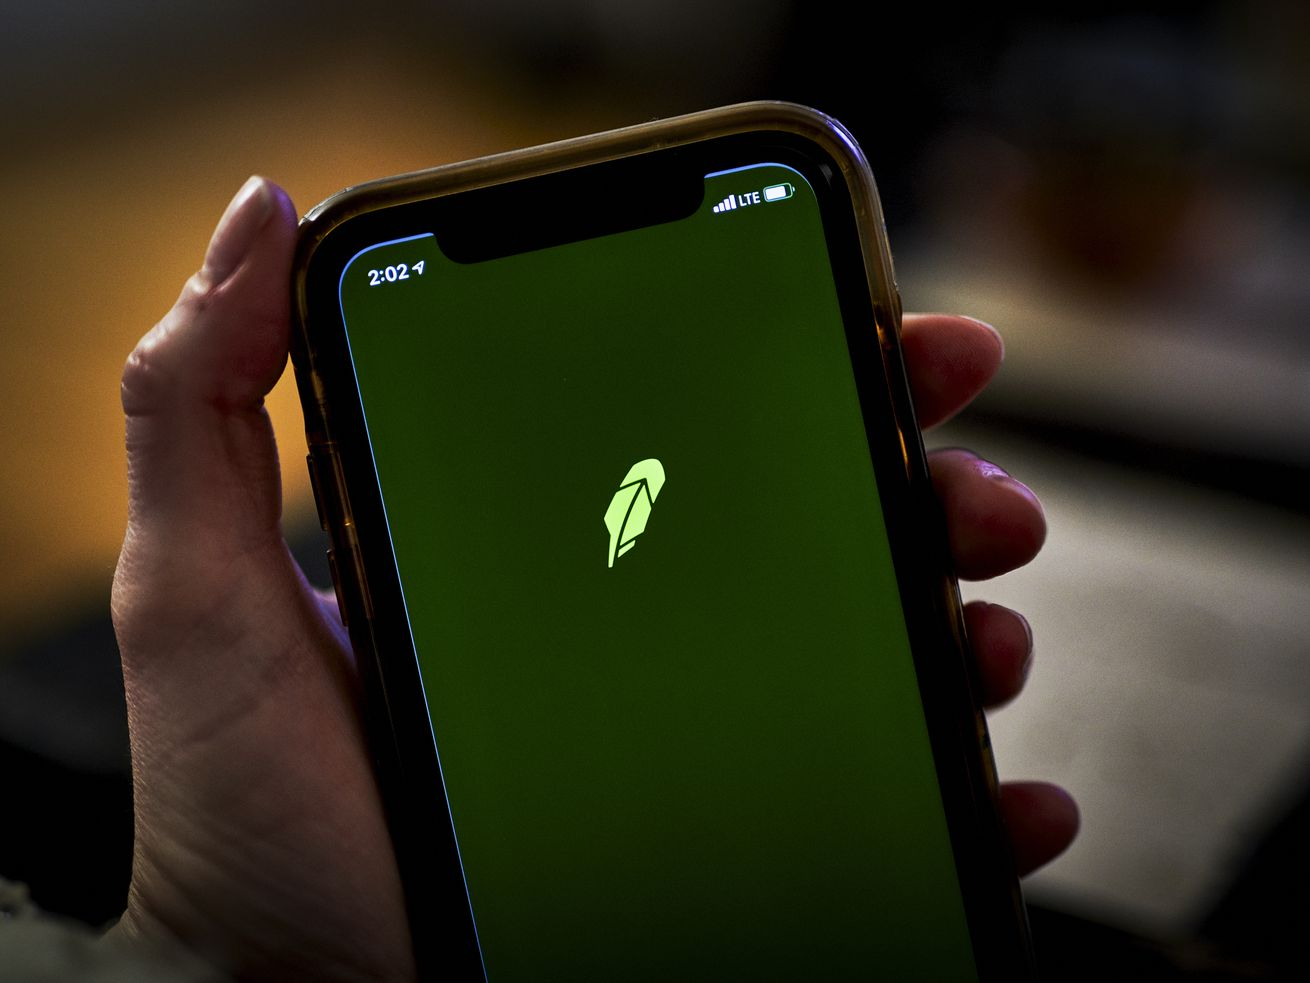 The Robinhood app displayed on a smartphone screen held in a person's hand.